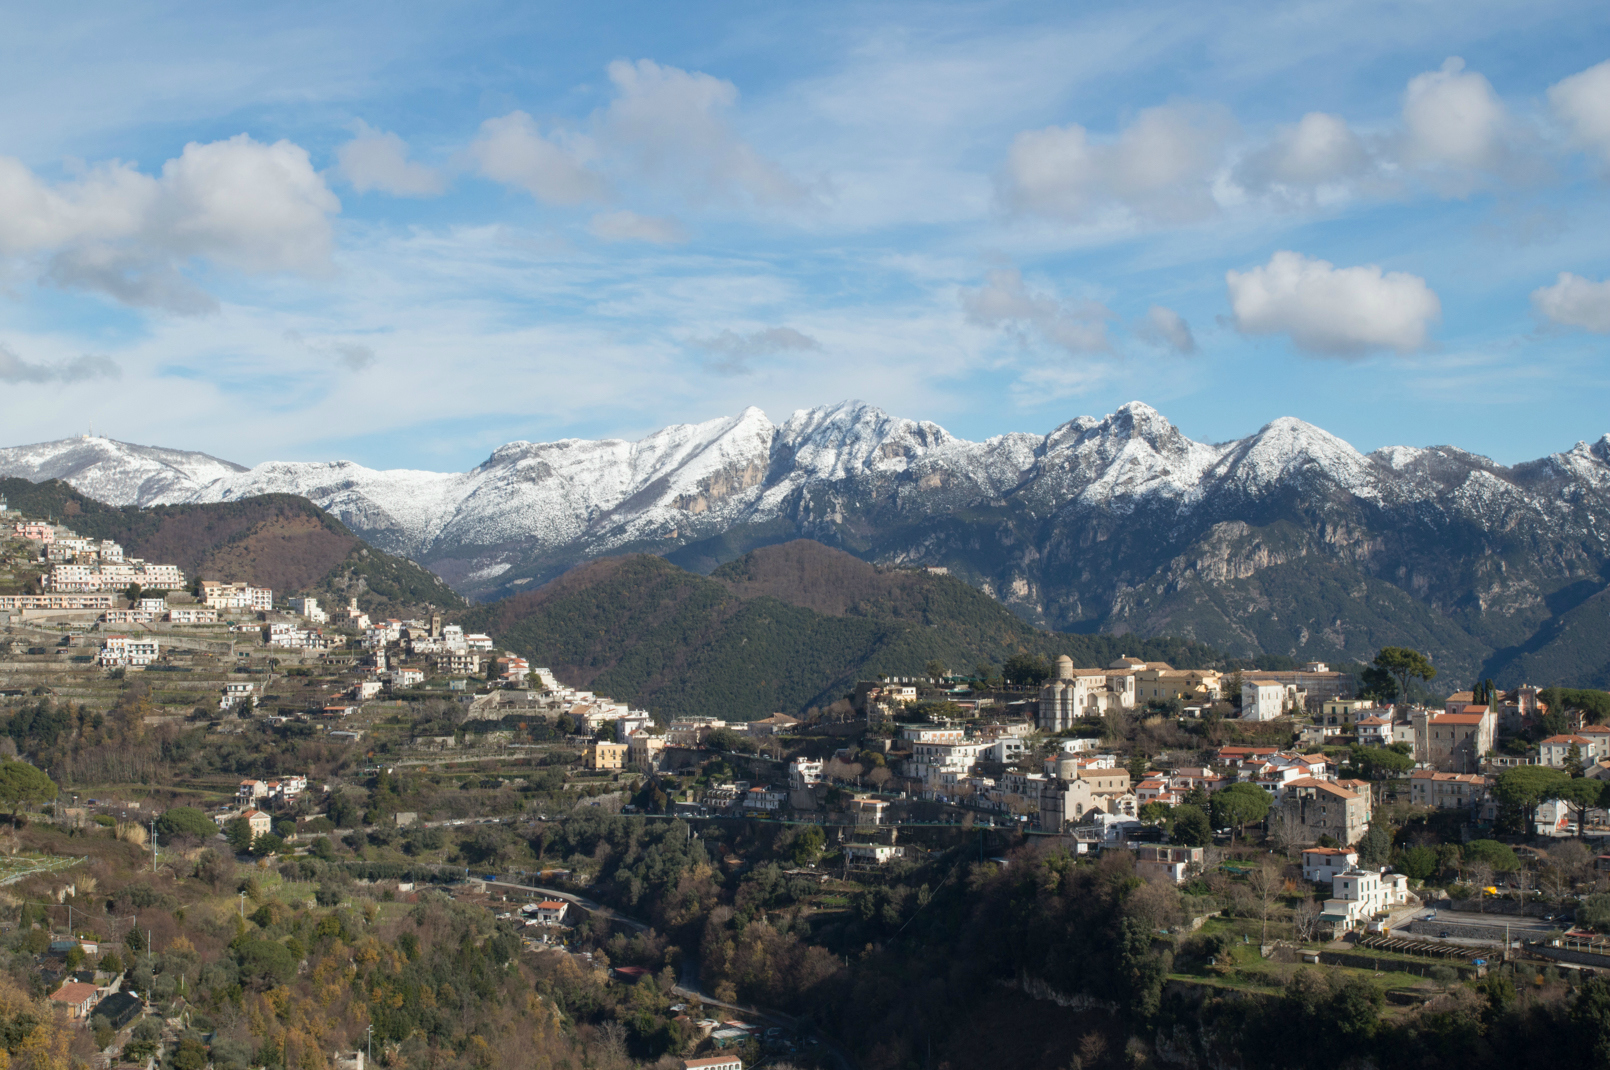 Snow on the Amalfi Coast over Ravello